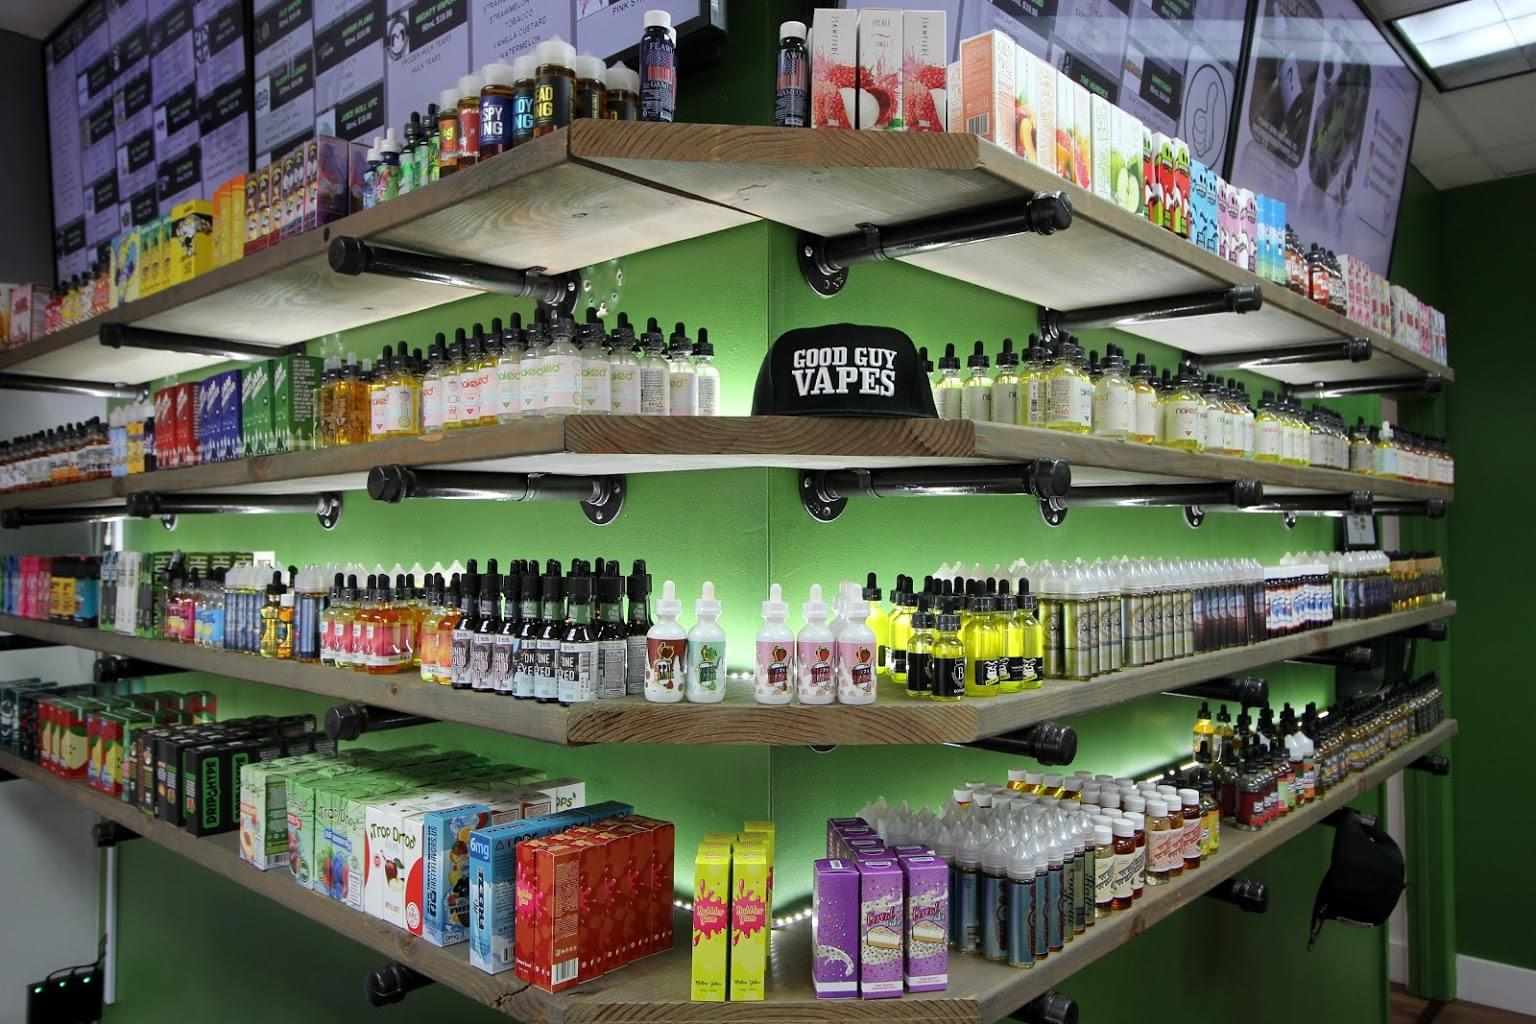 Good Guy Vapes – Clifton, NJ – See-Inside Vaporizer Store